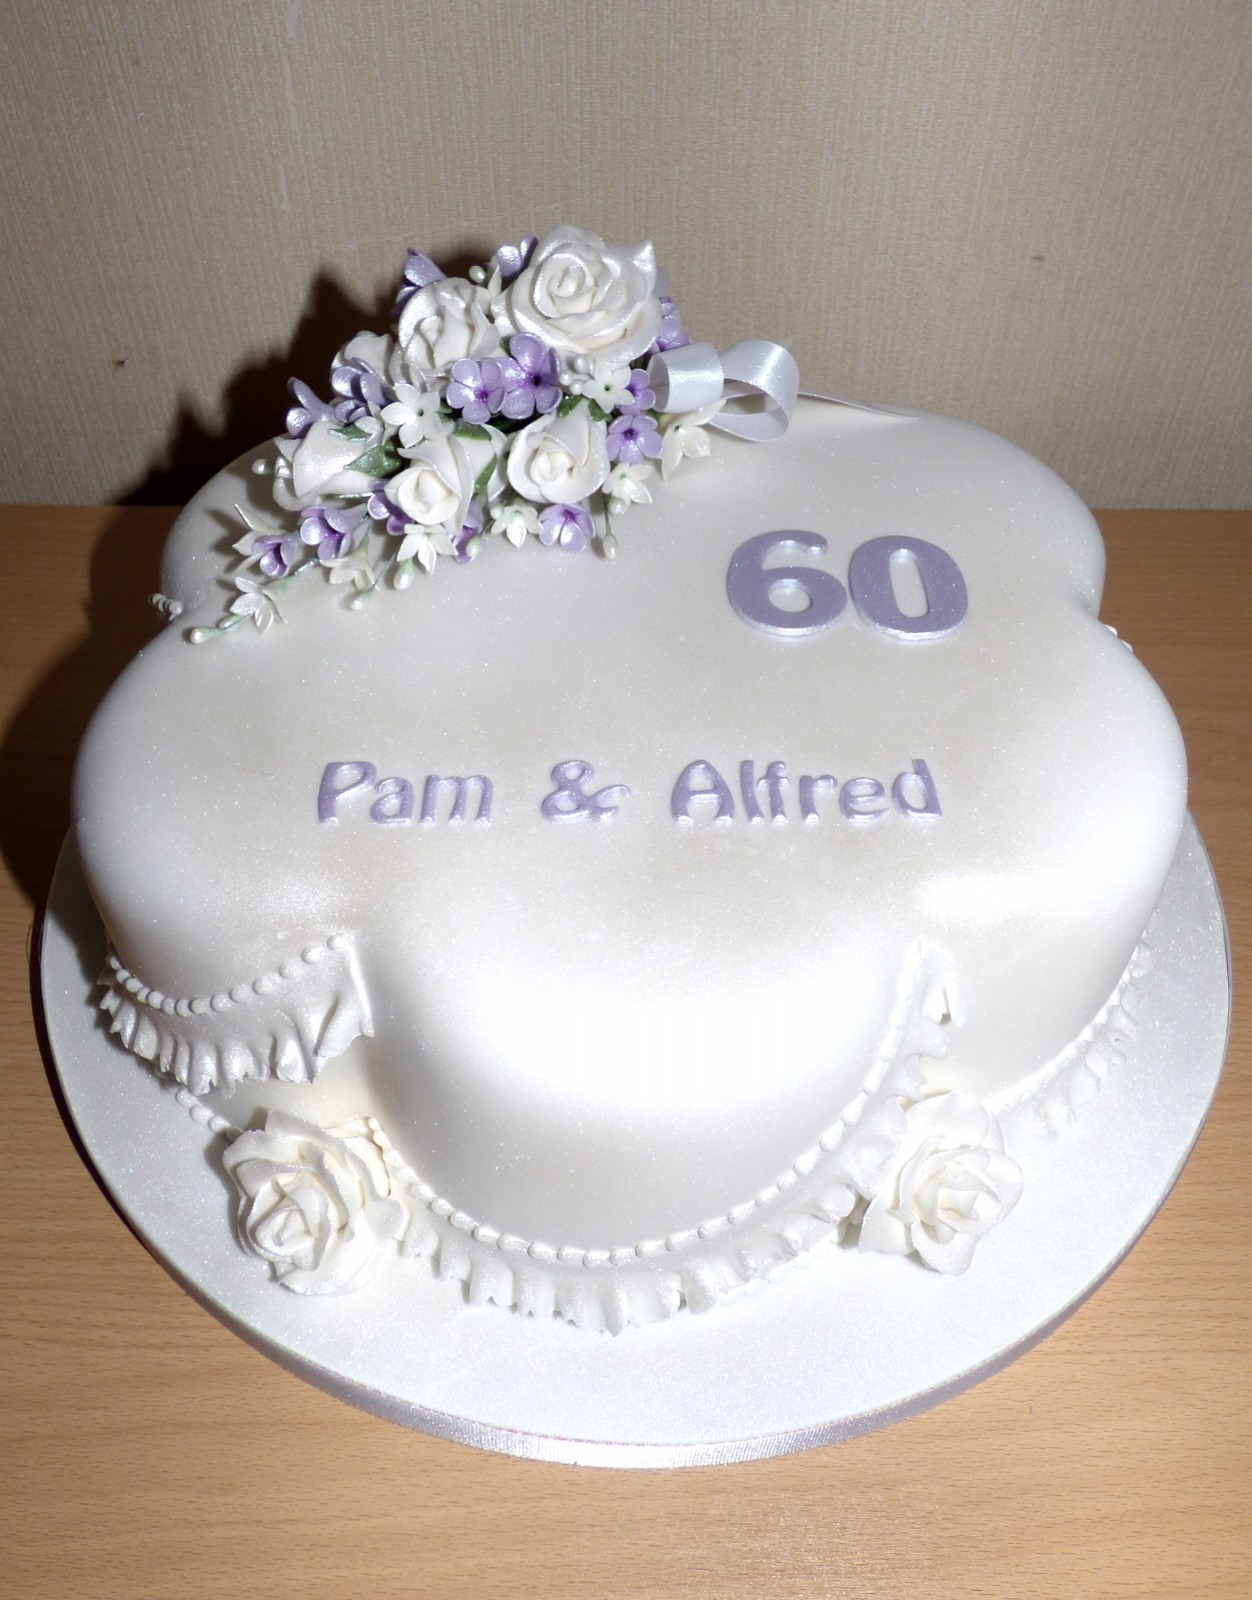 Diamond Wedding Anniversary Cake with Sugar Flower Spray